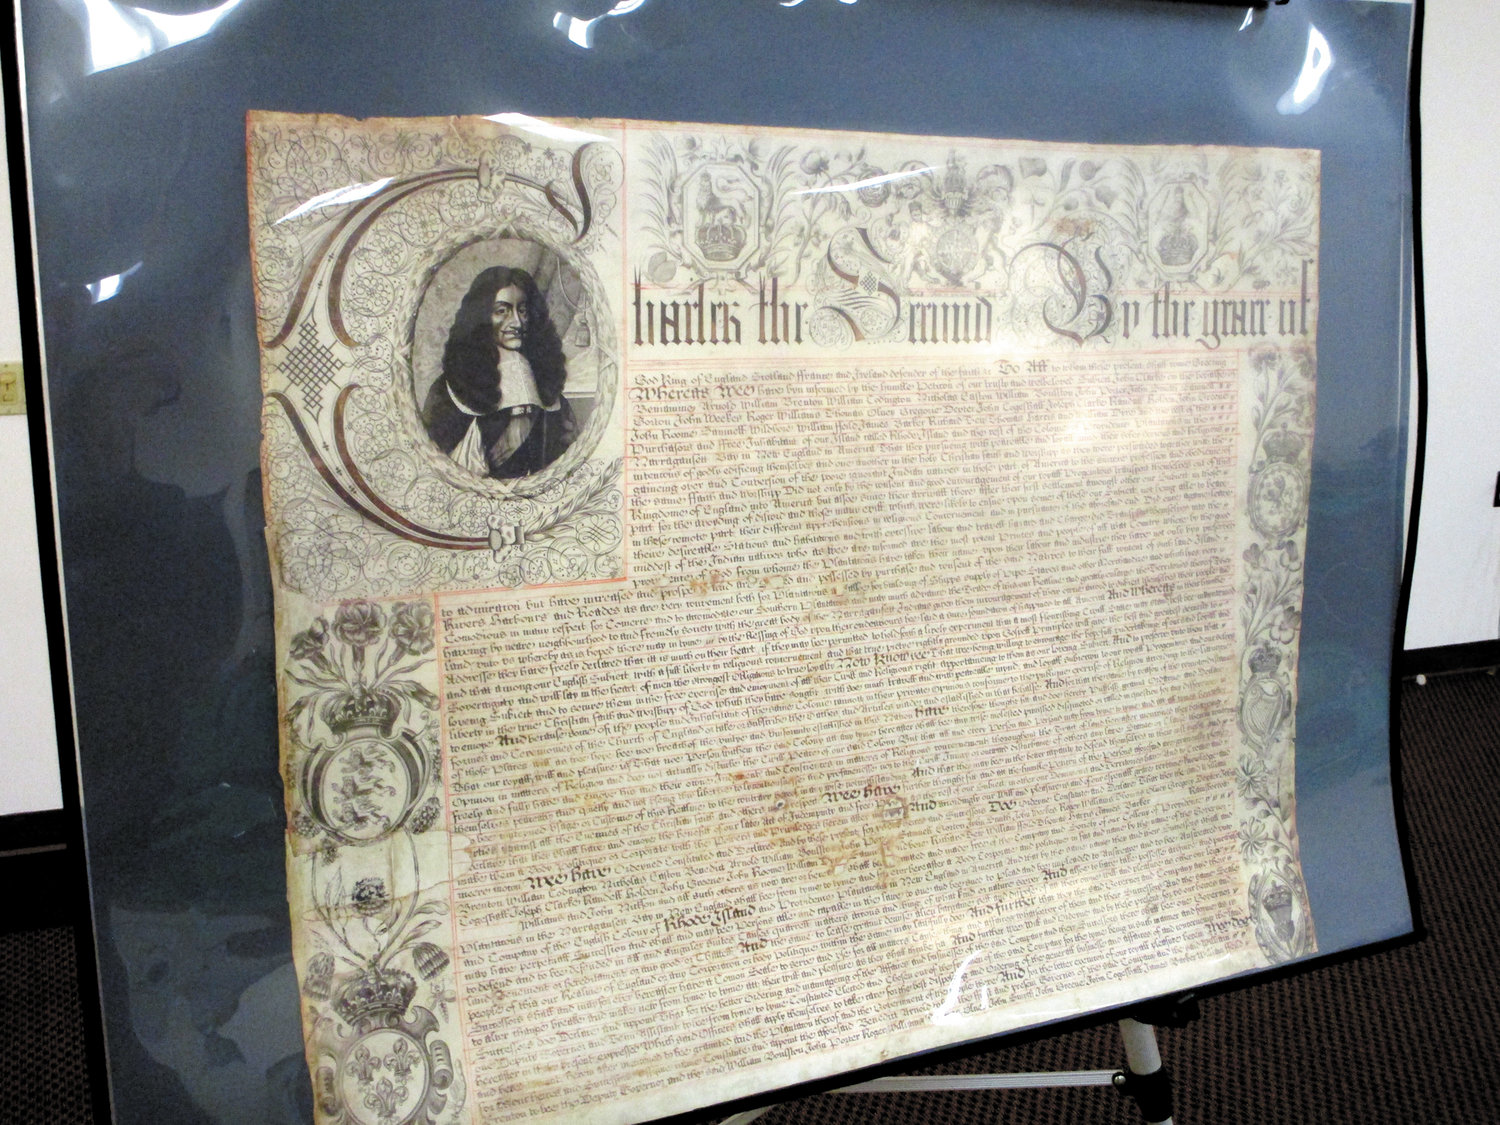 A copy of Rhode Island's royal charter is part of the display at Cranston Public Library's Central Library.